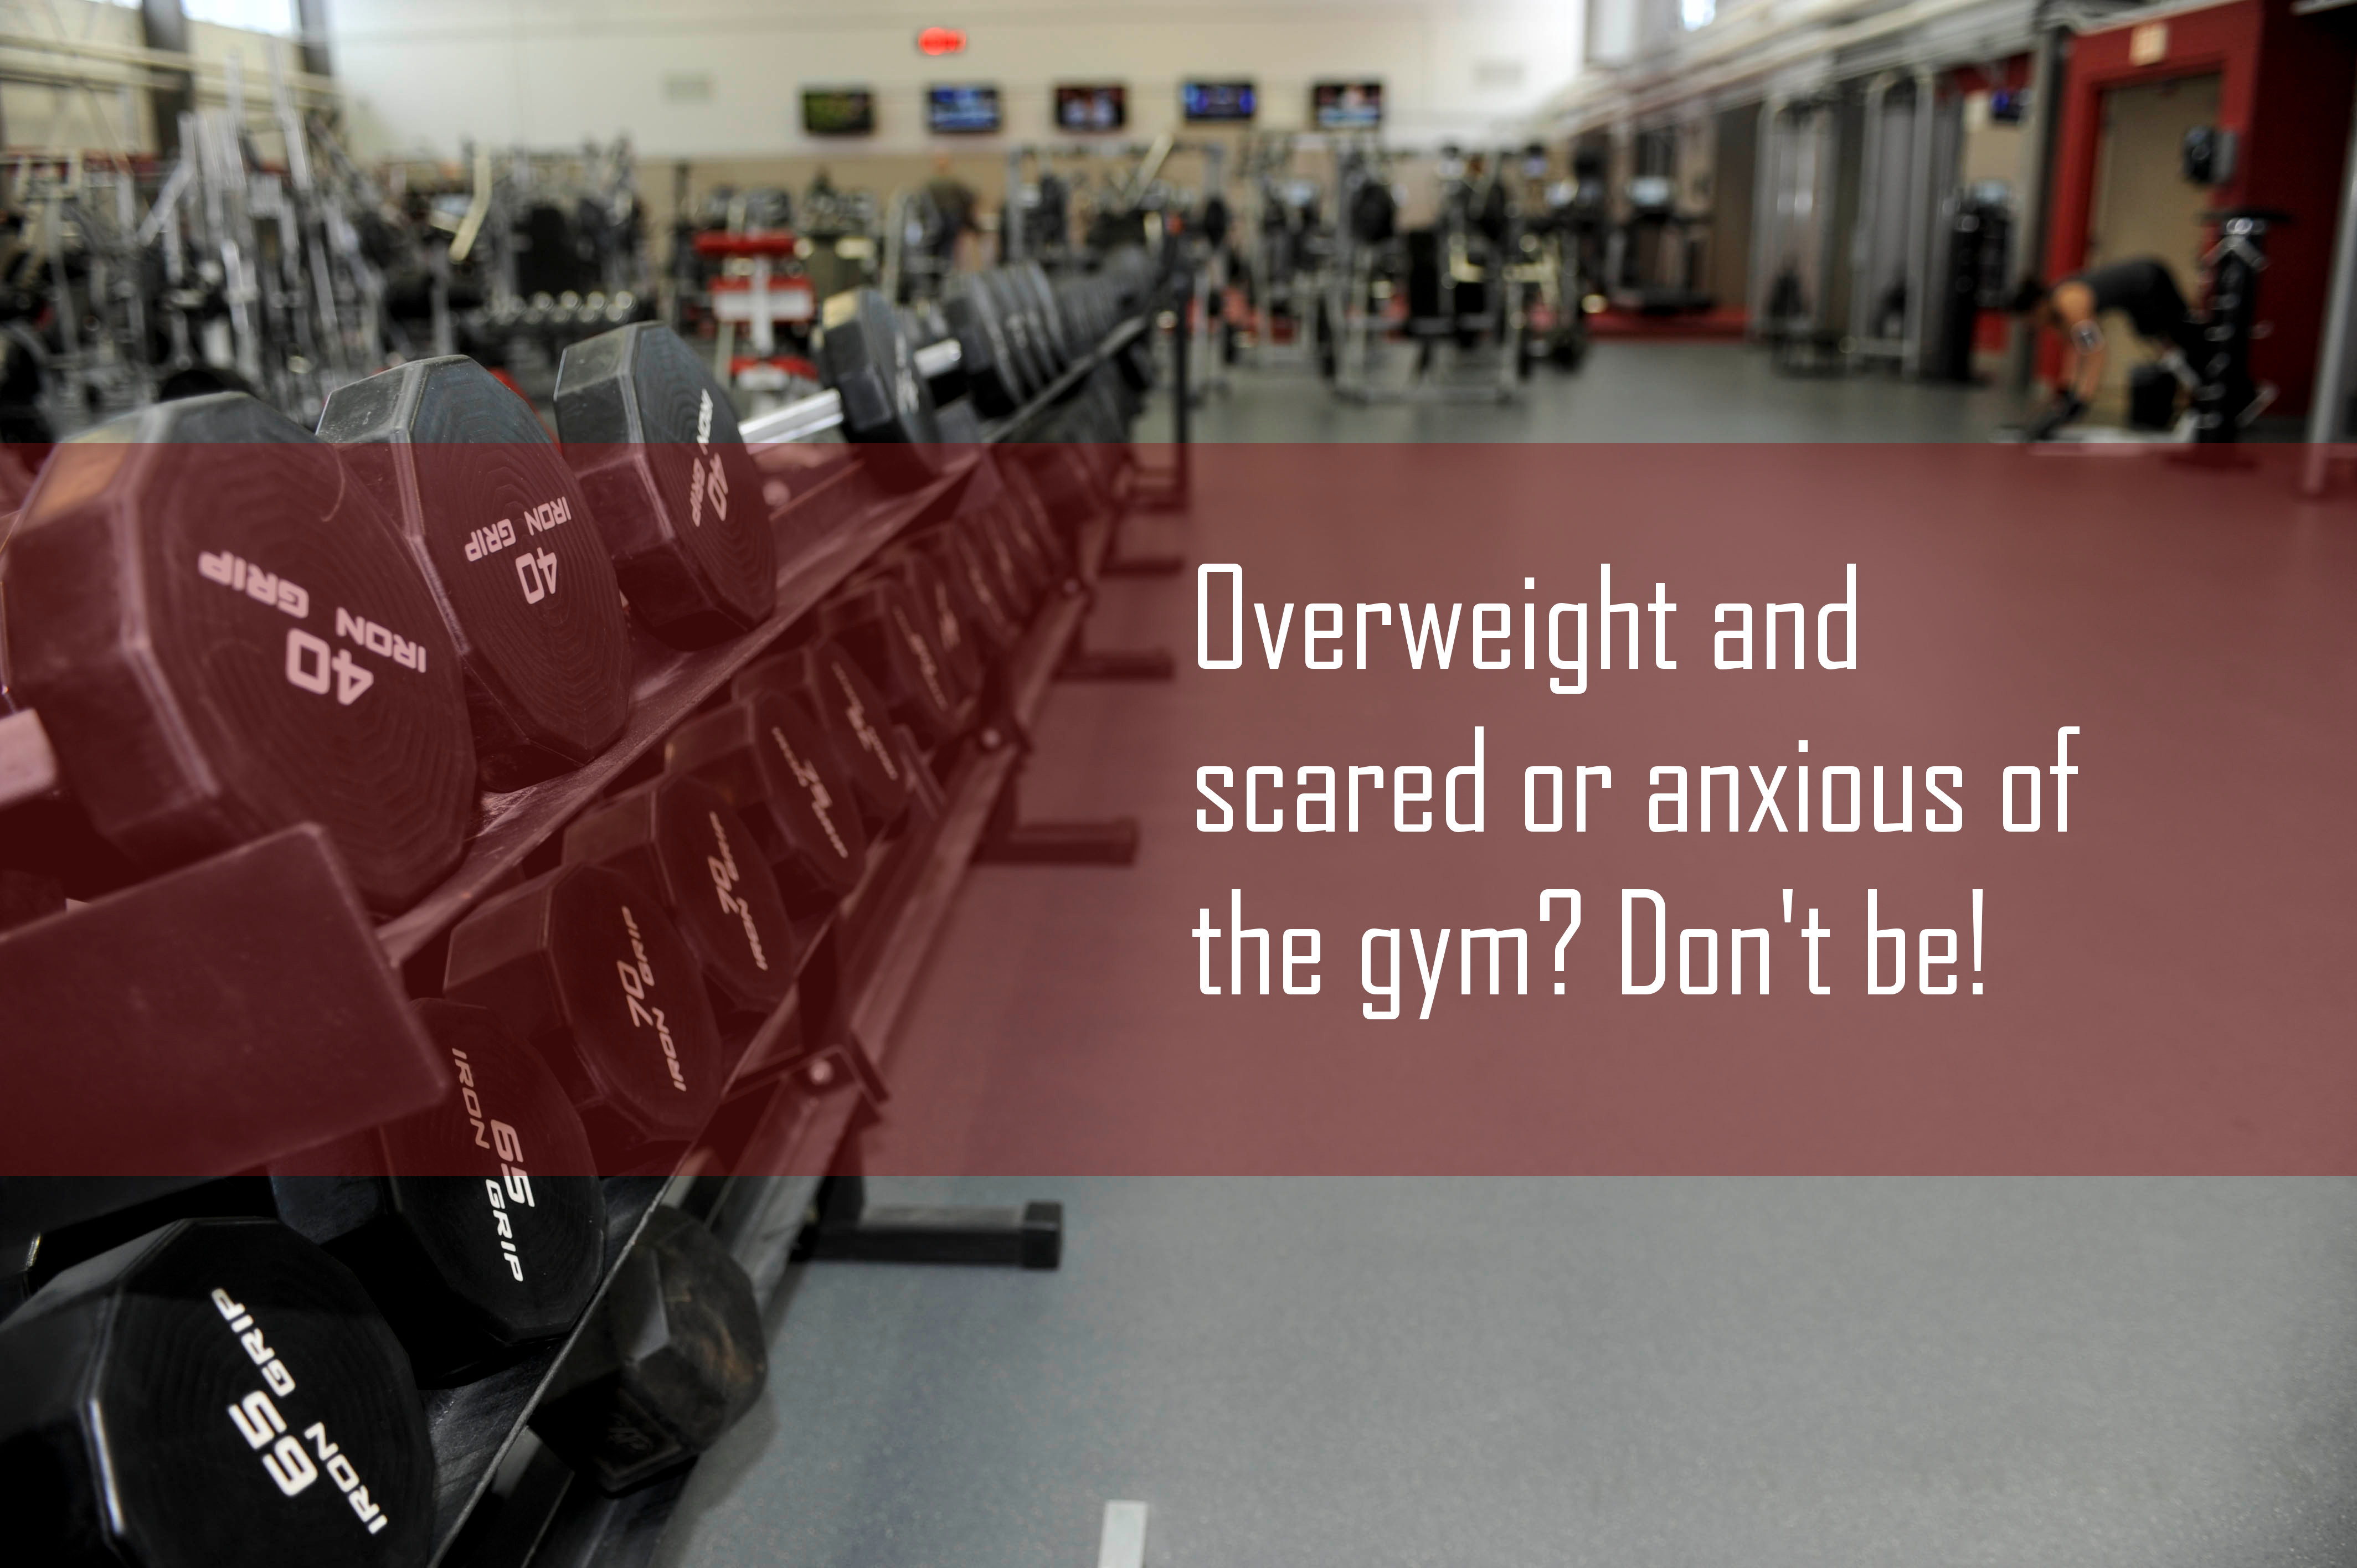 Overweight and scared or anxious of the gym? Don't be!